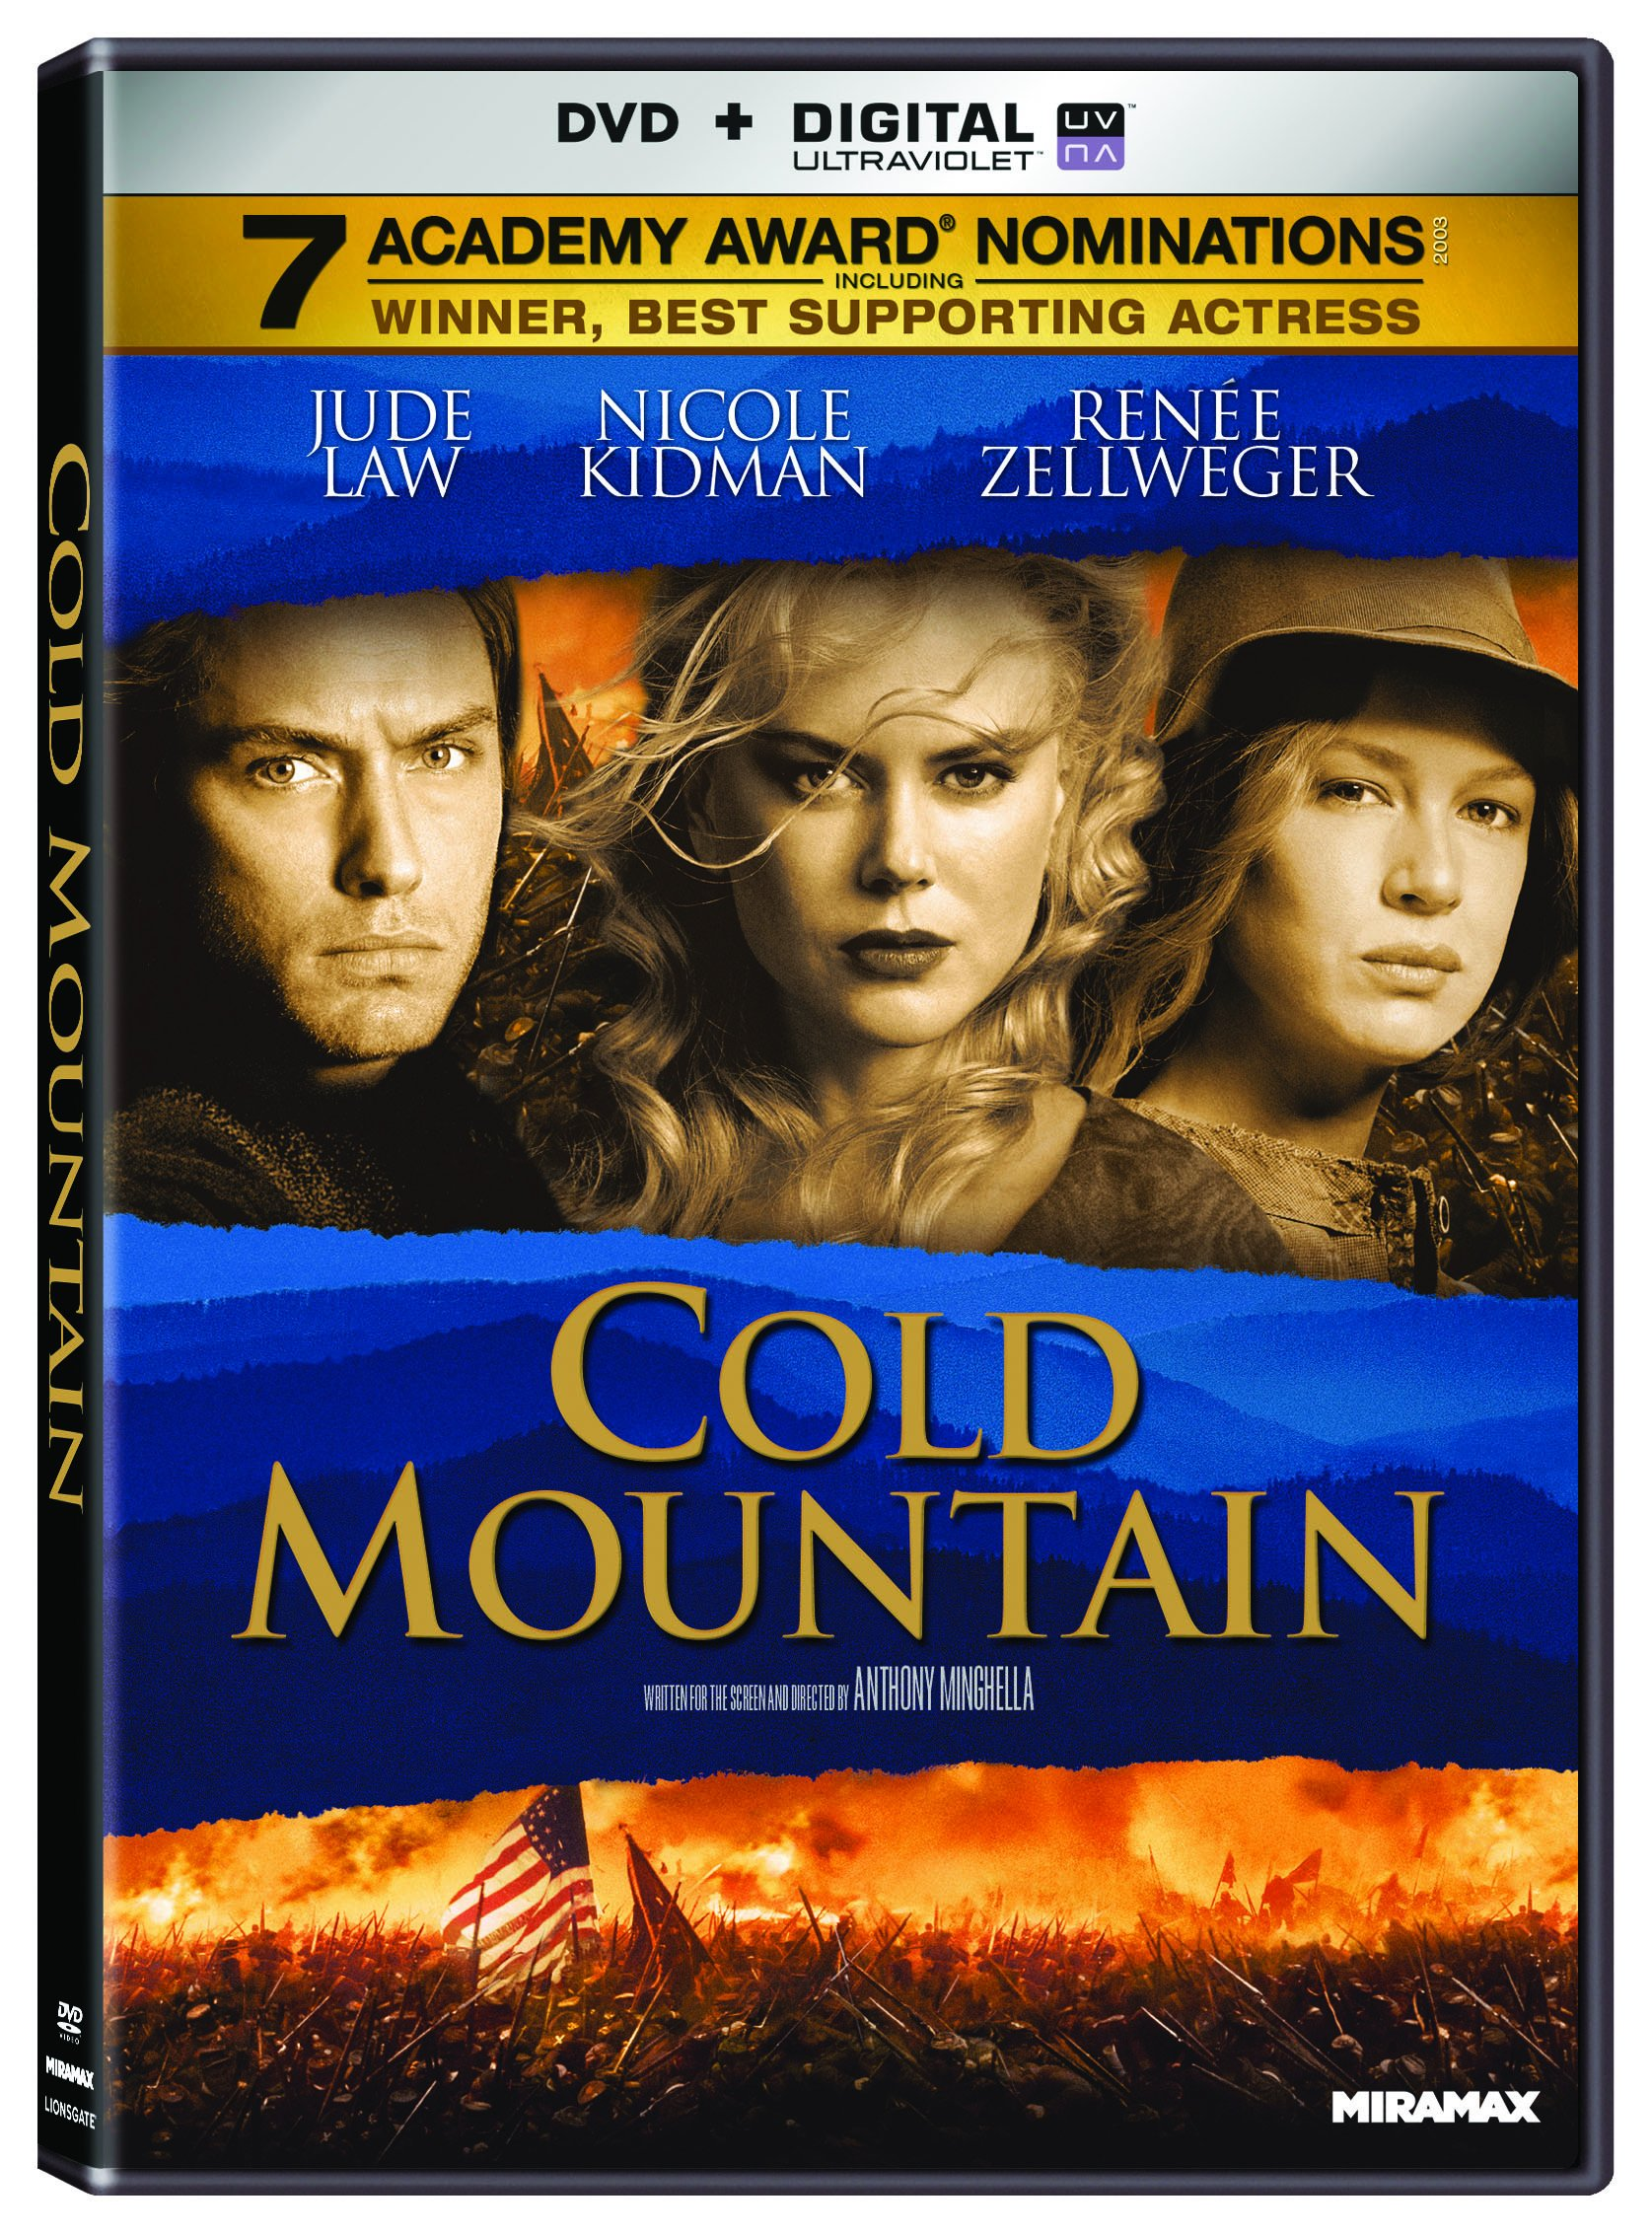 DVD : Cold Mountain (Widescreen, Dolby, AC-3, Digital Theater System)